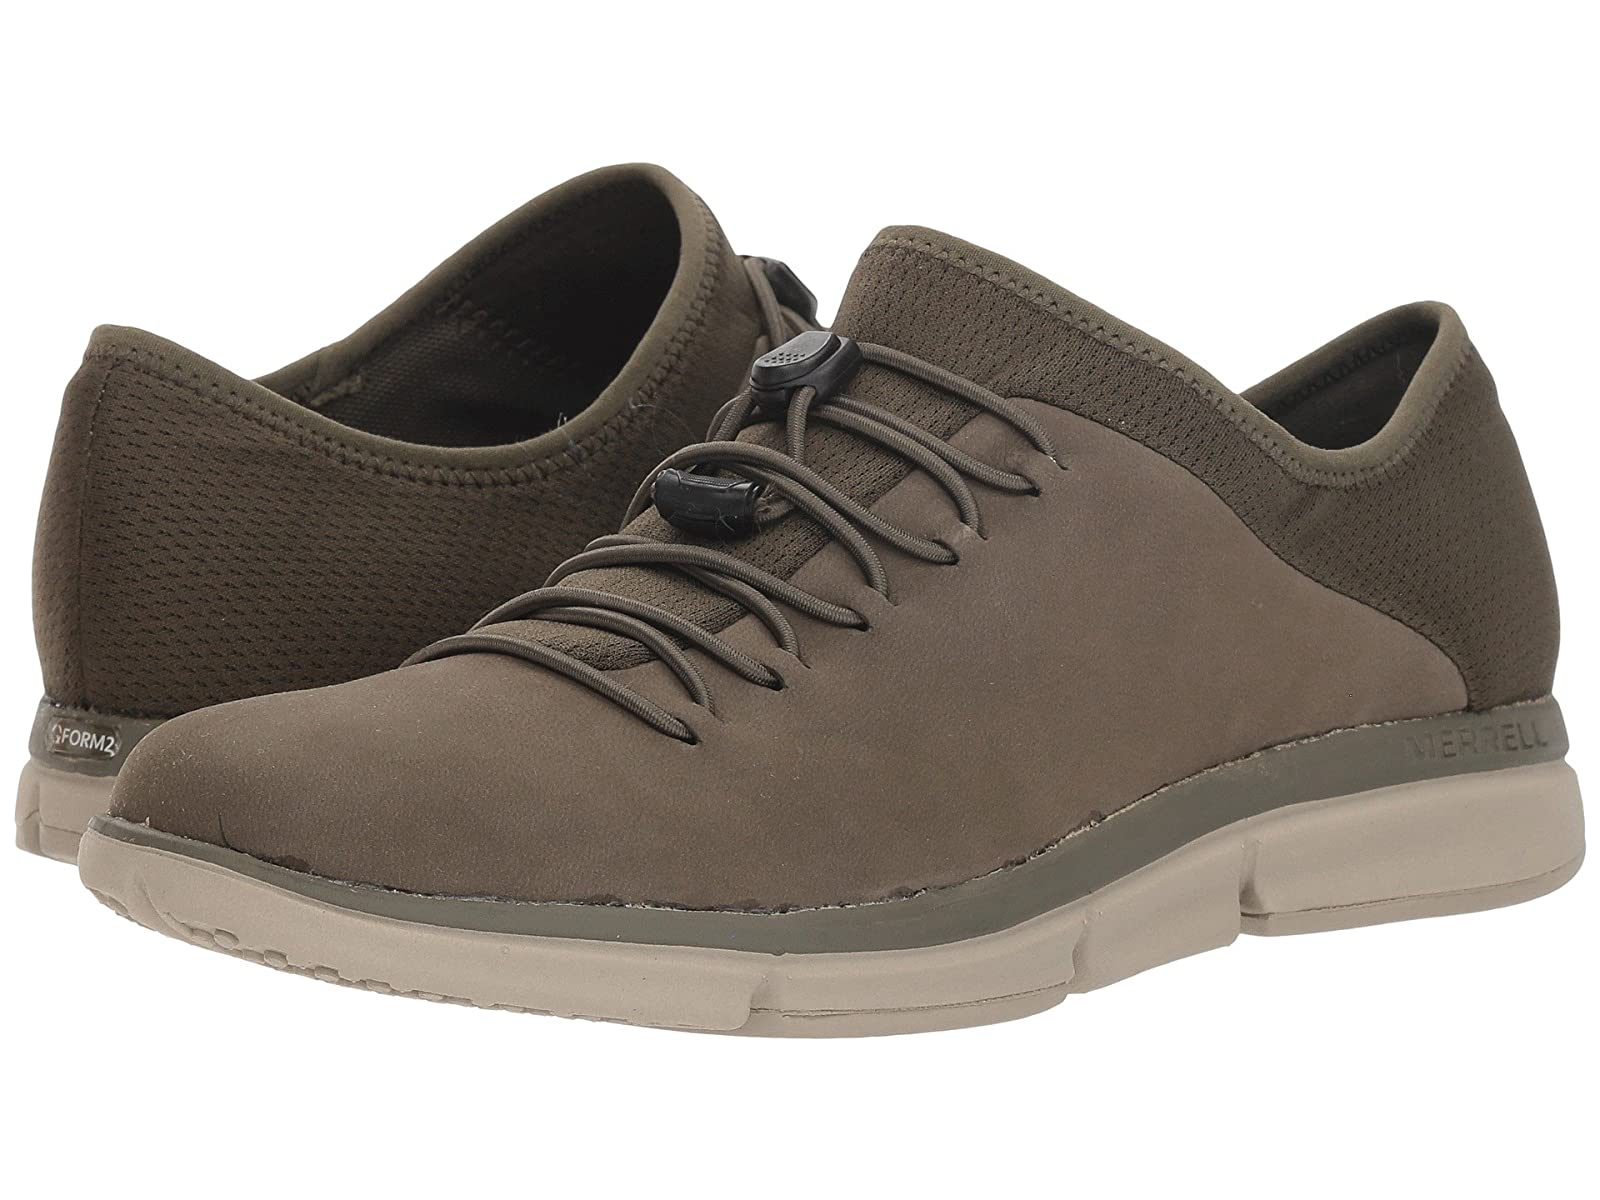 Merrell Zoe Sojourn Lace Leather Q2Atmospheric grades have affordable shoes